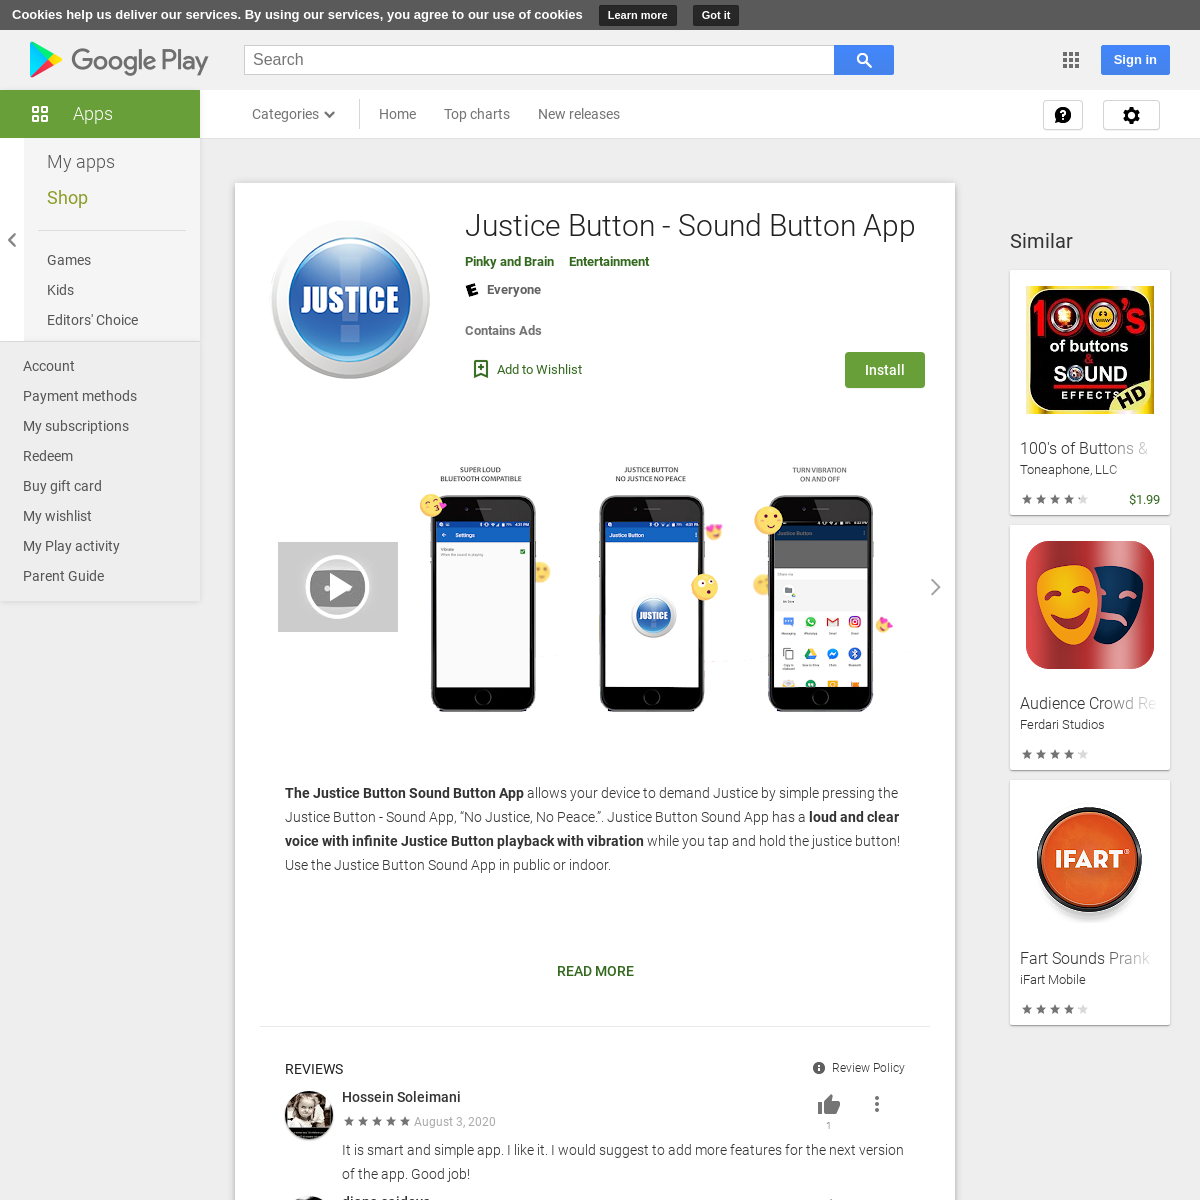 Justice Button - Sound Button App - Apps on Google Play